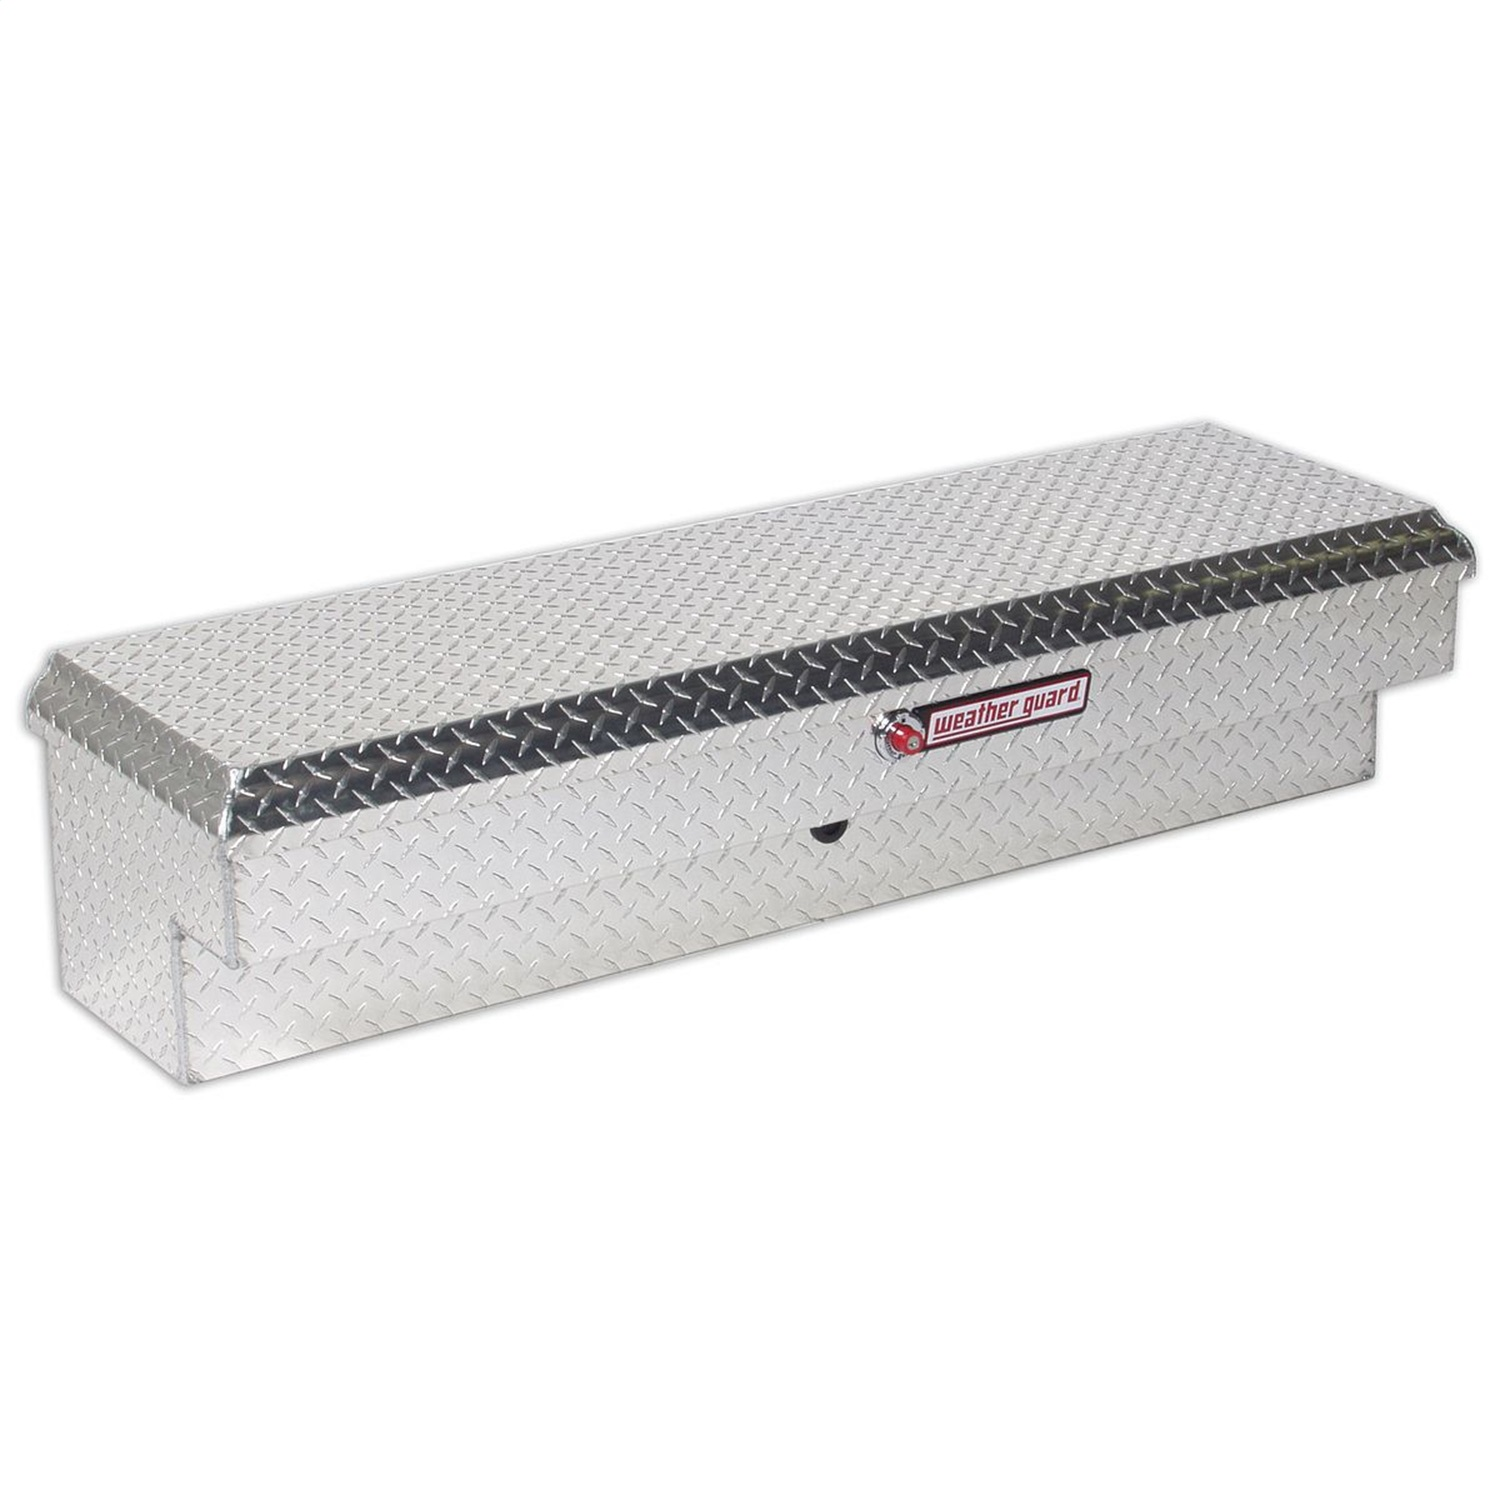 Lo-Side Box, Standard, 4.1 ft., Height 13.25 in., Length 56.25 in., Width 16.25 in., Clear, Heavy Duty Welded, Aluminum